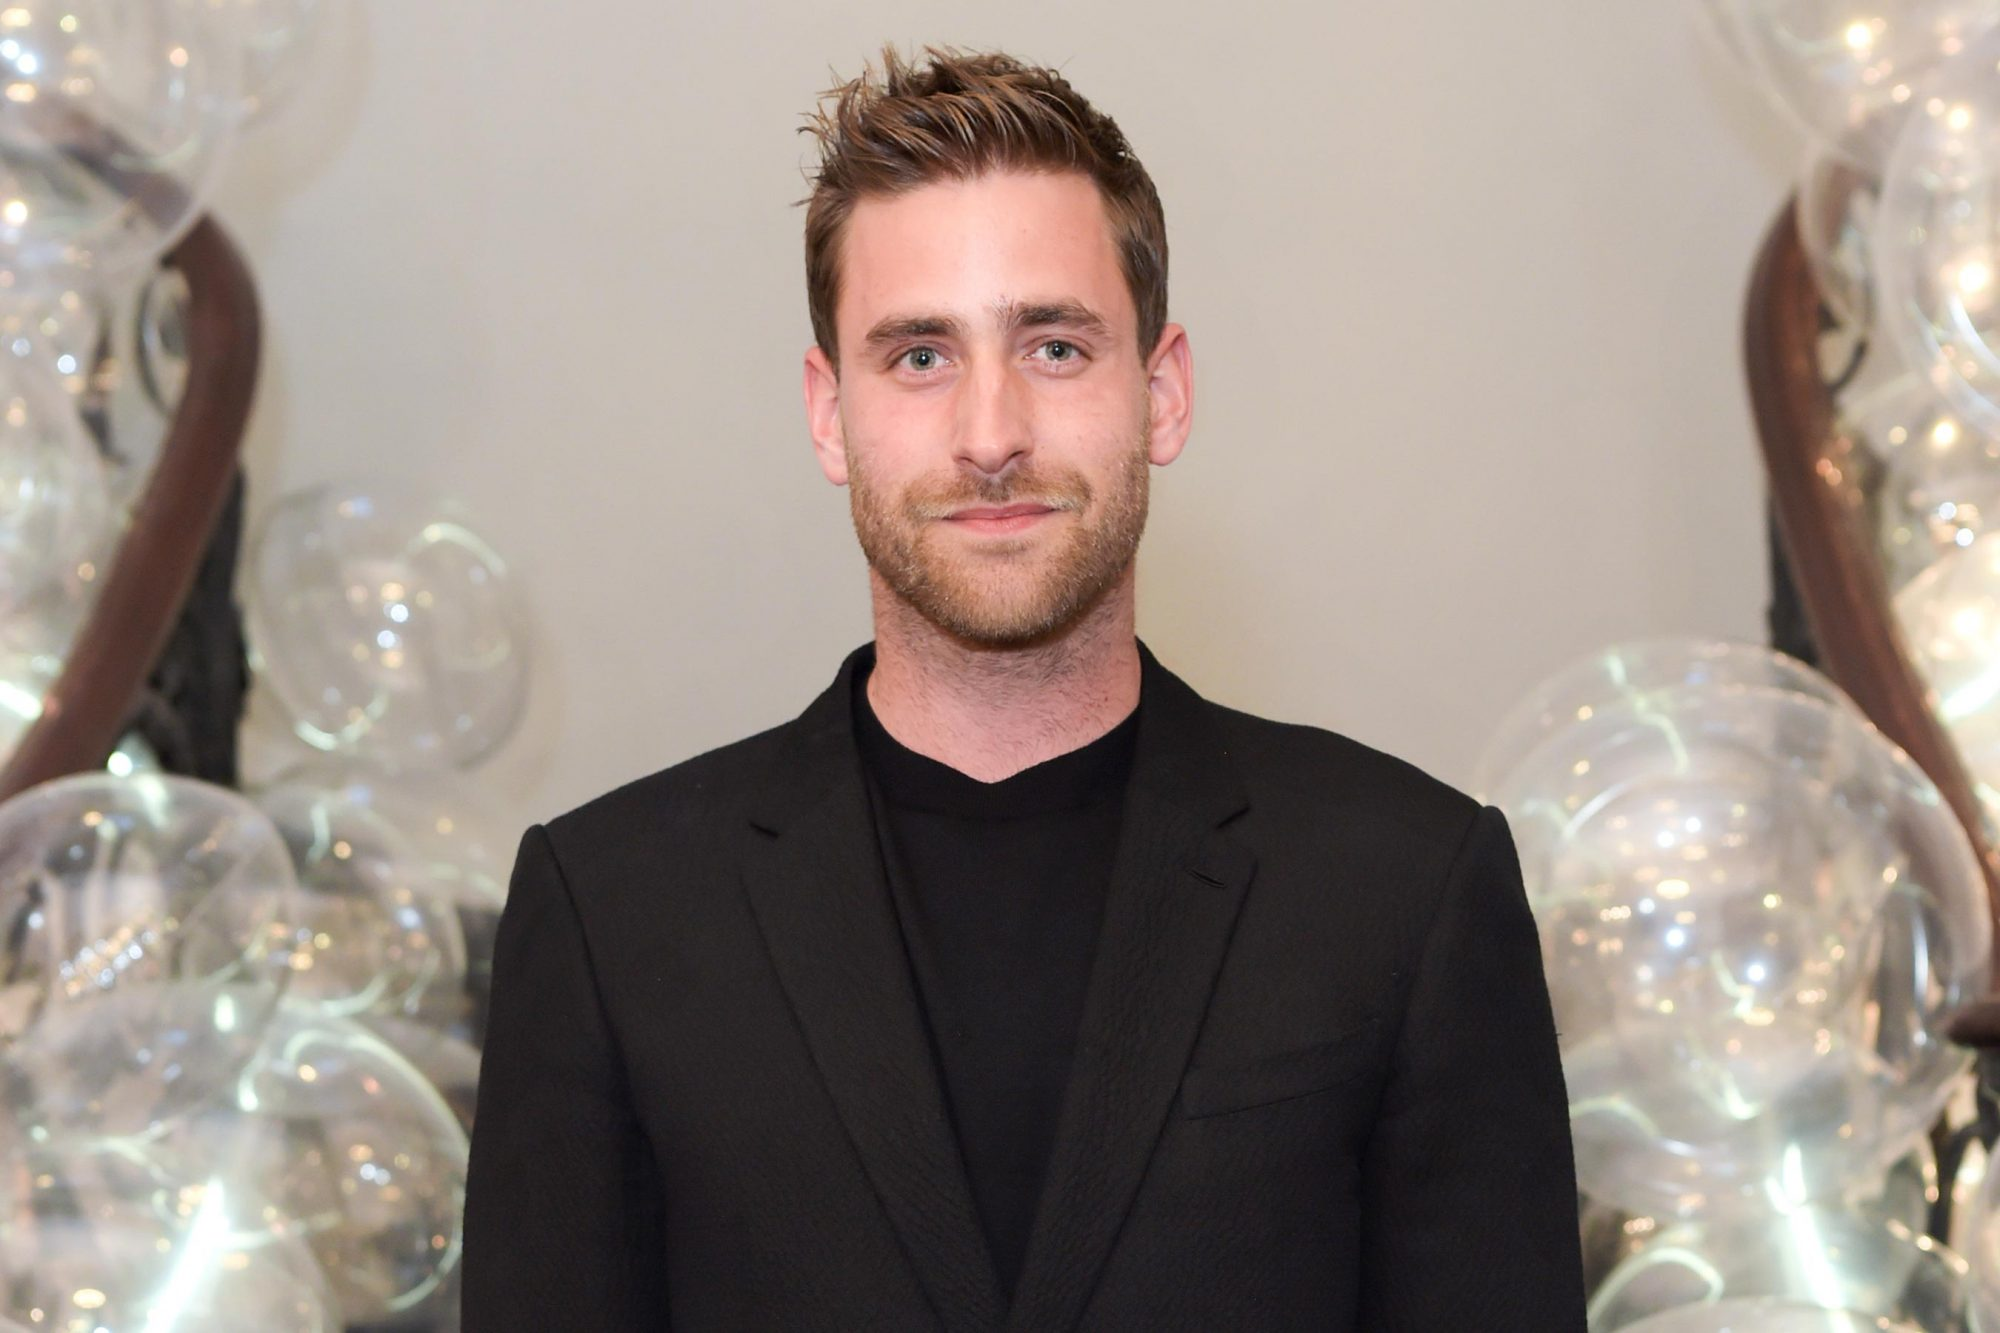 LONDON, ENGLAND - JUNE 06: Oliver Jackson-Cohen attends the Moet Summer House opening night on June 6, 2019 in London, England. (Photo by David M. Benett/Dave Benett/Getty Images for Moet Hennessy)